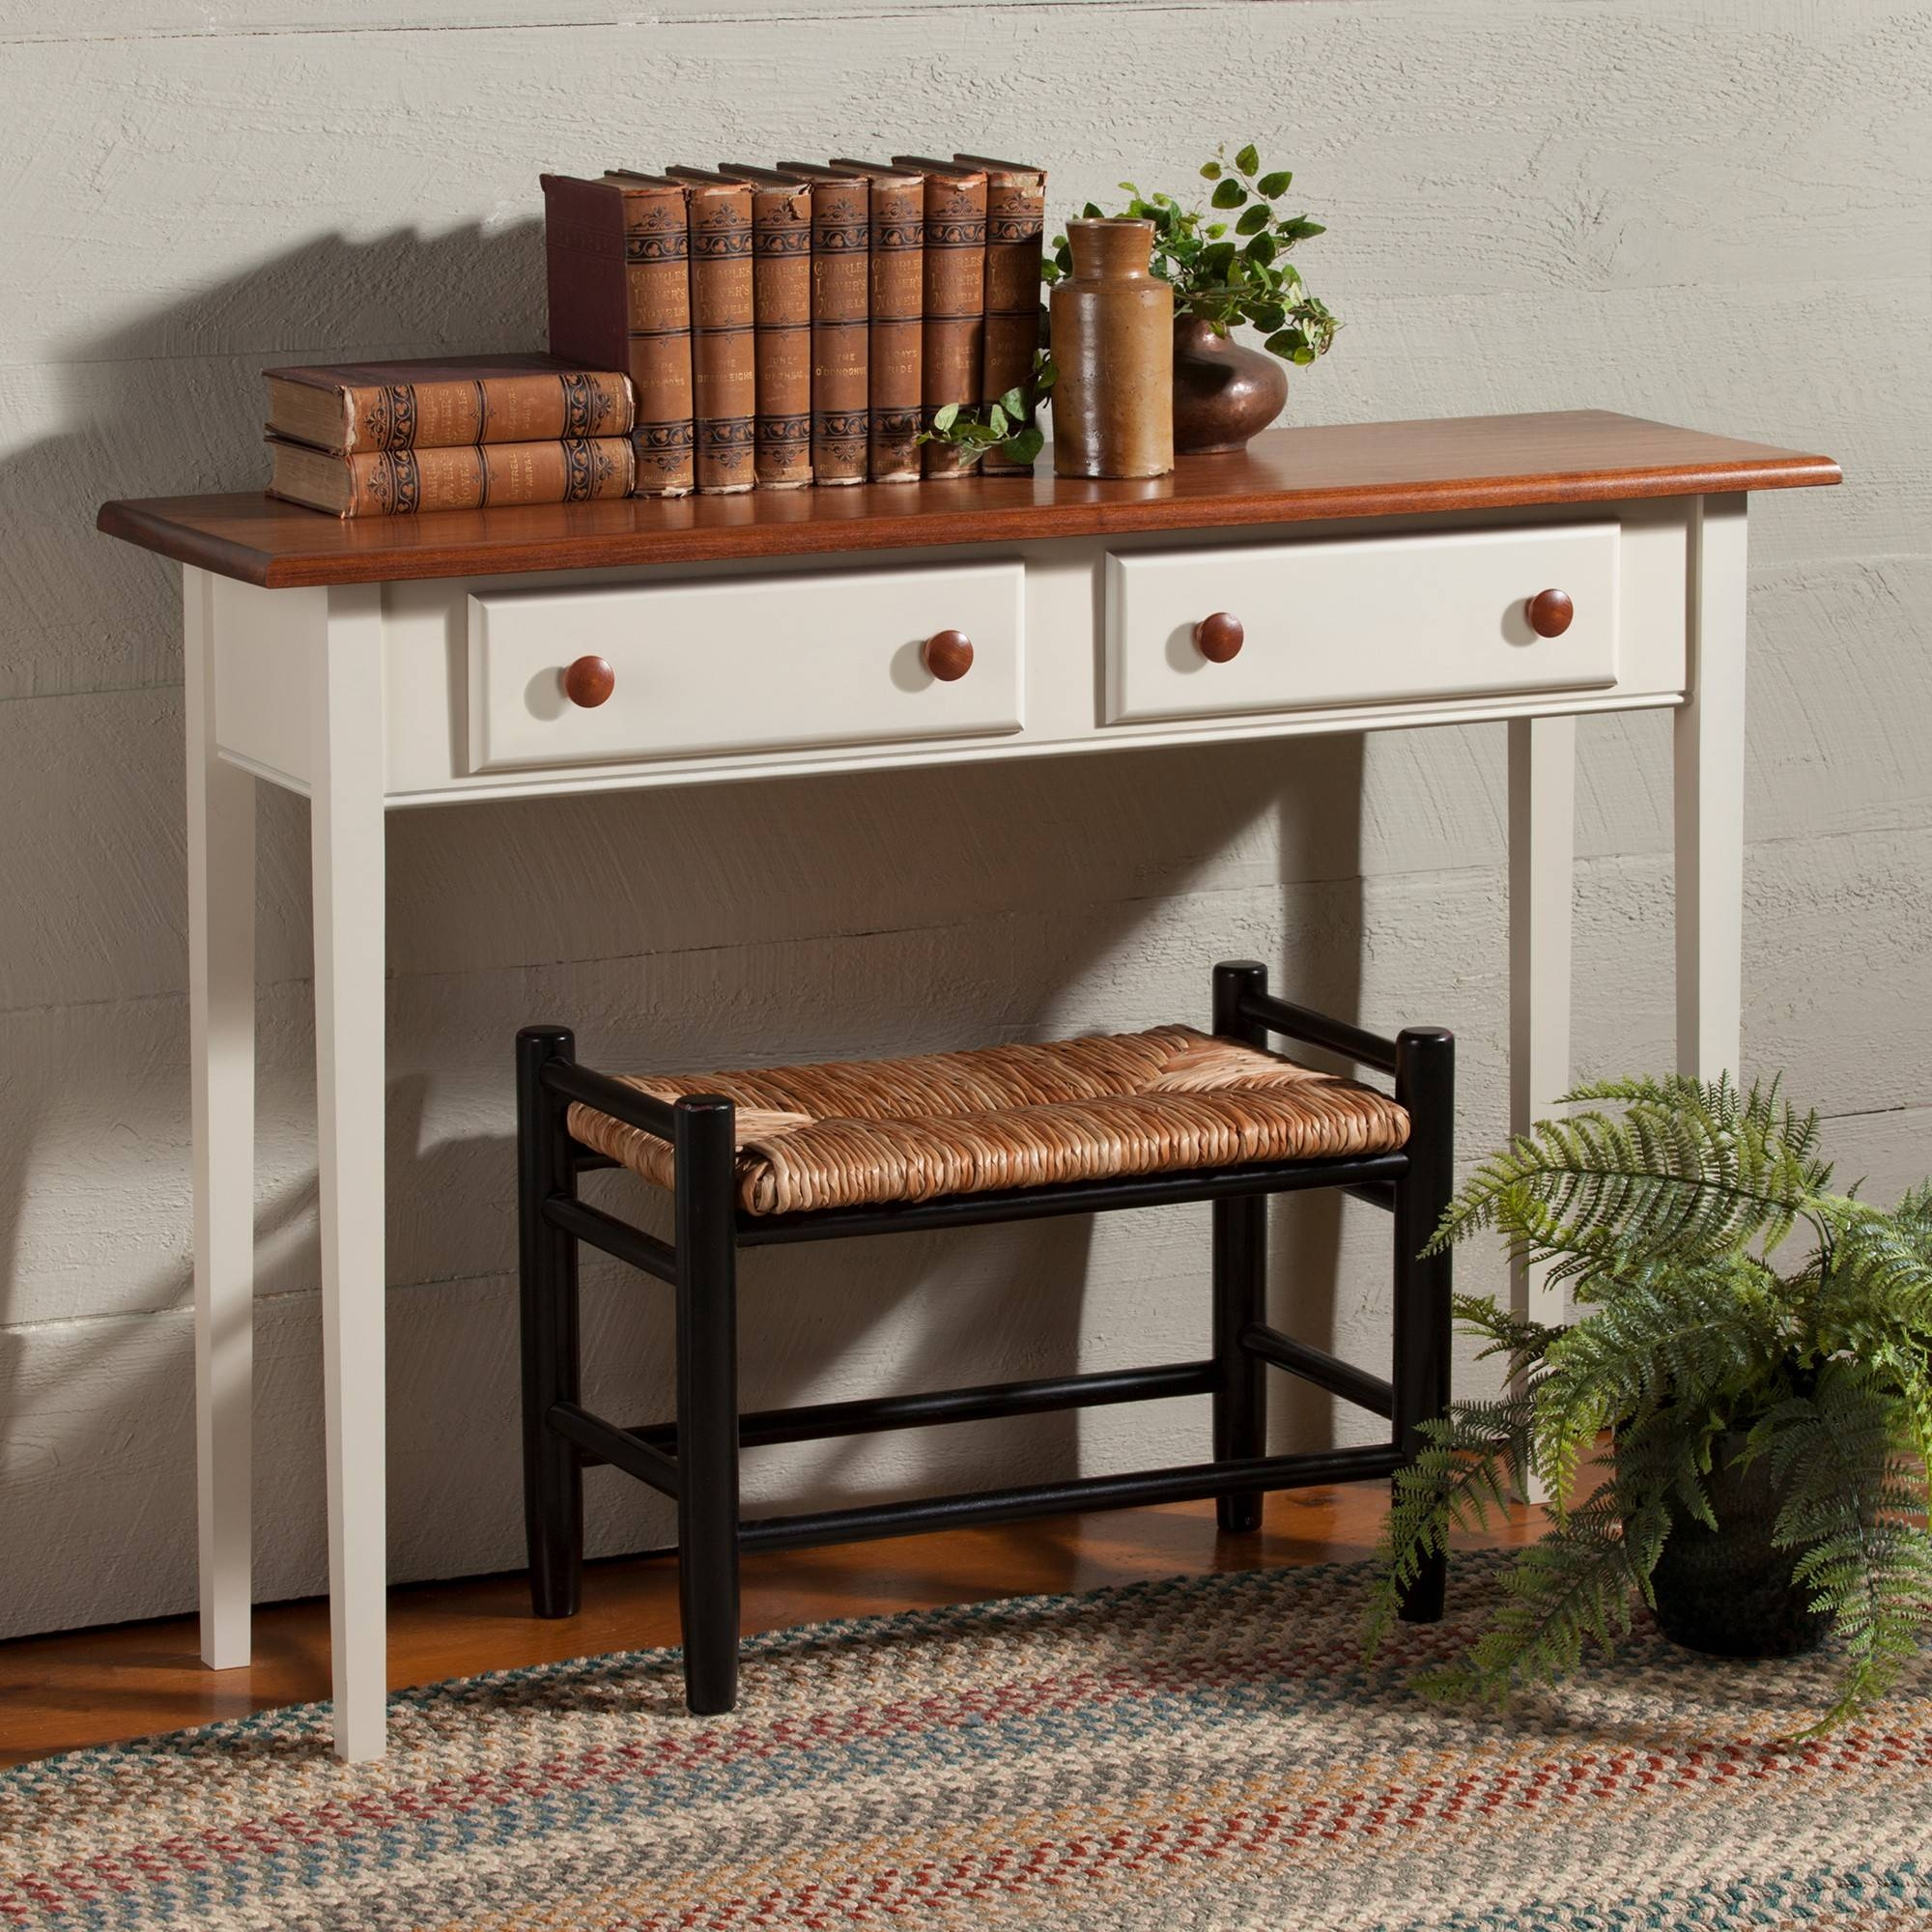 Country Shaker Sofa Hall Table | Sturbridge Yankee Workshop Regarding Shaker Sofas (View 14 of 15)